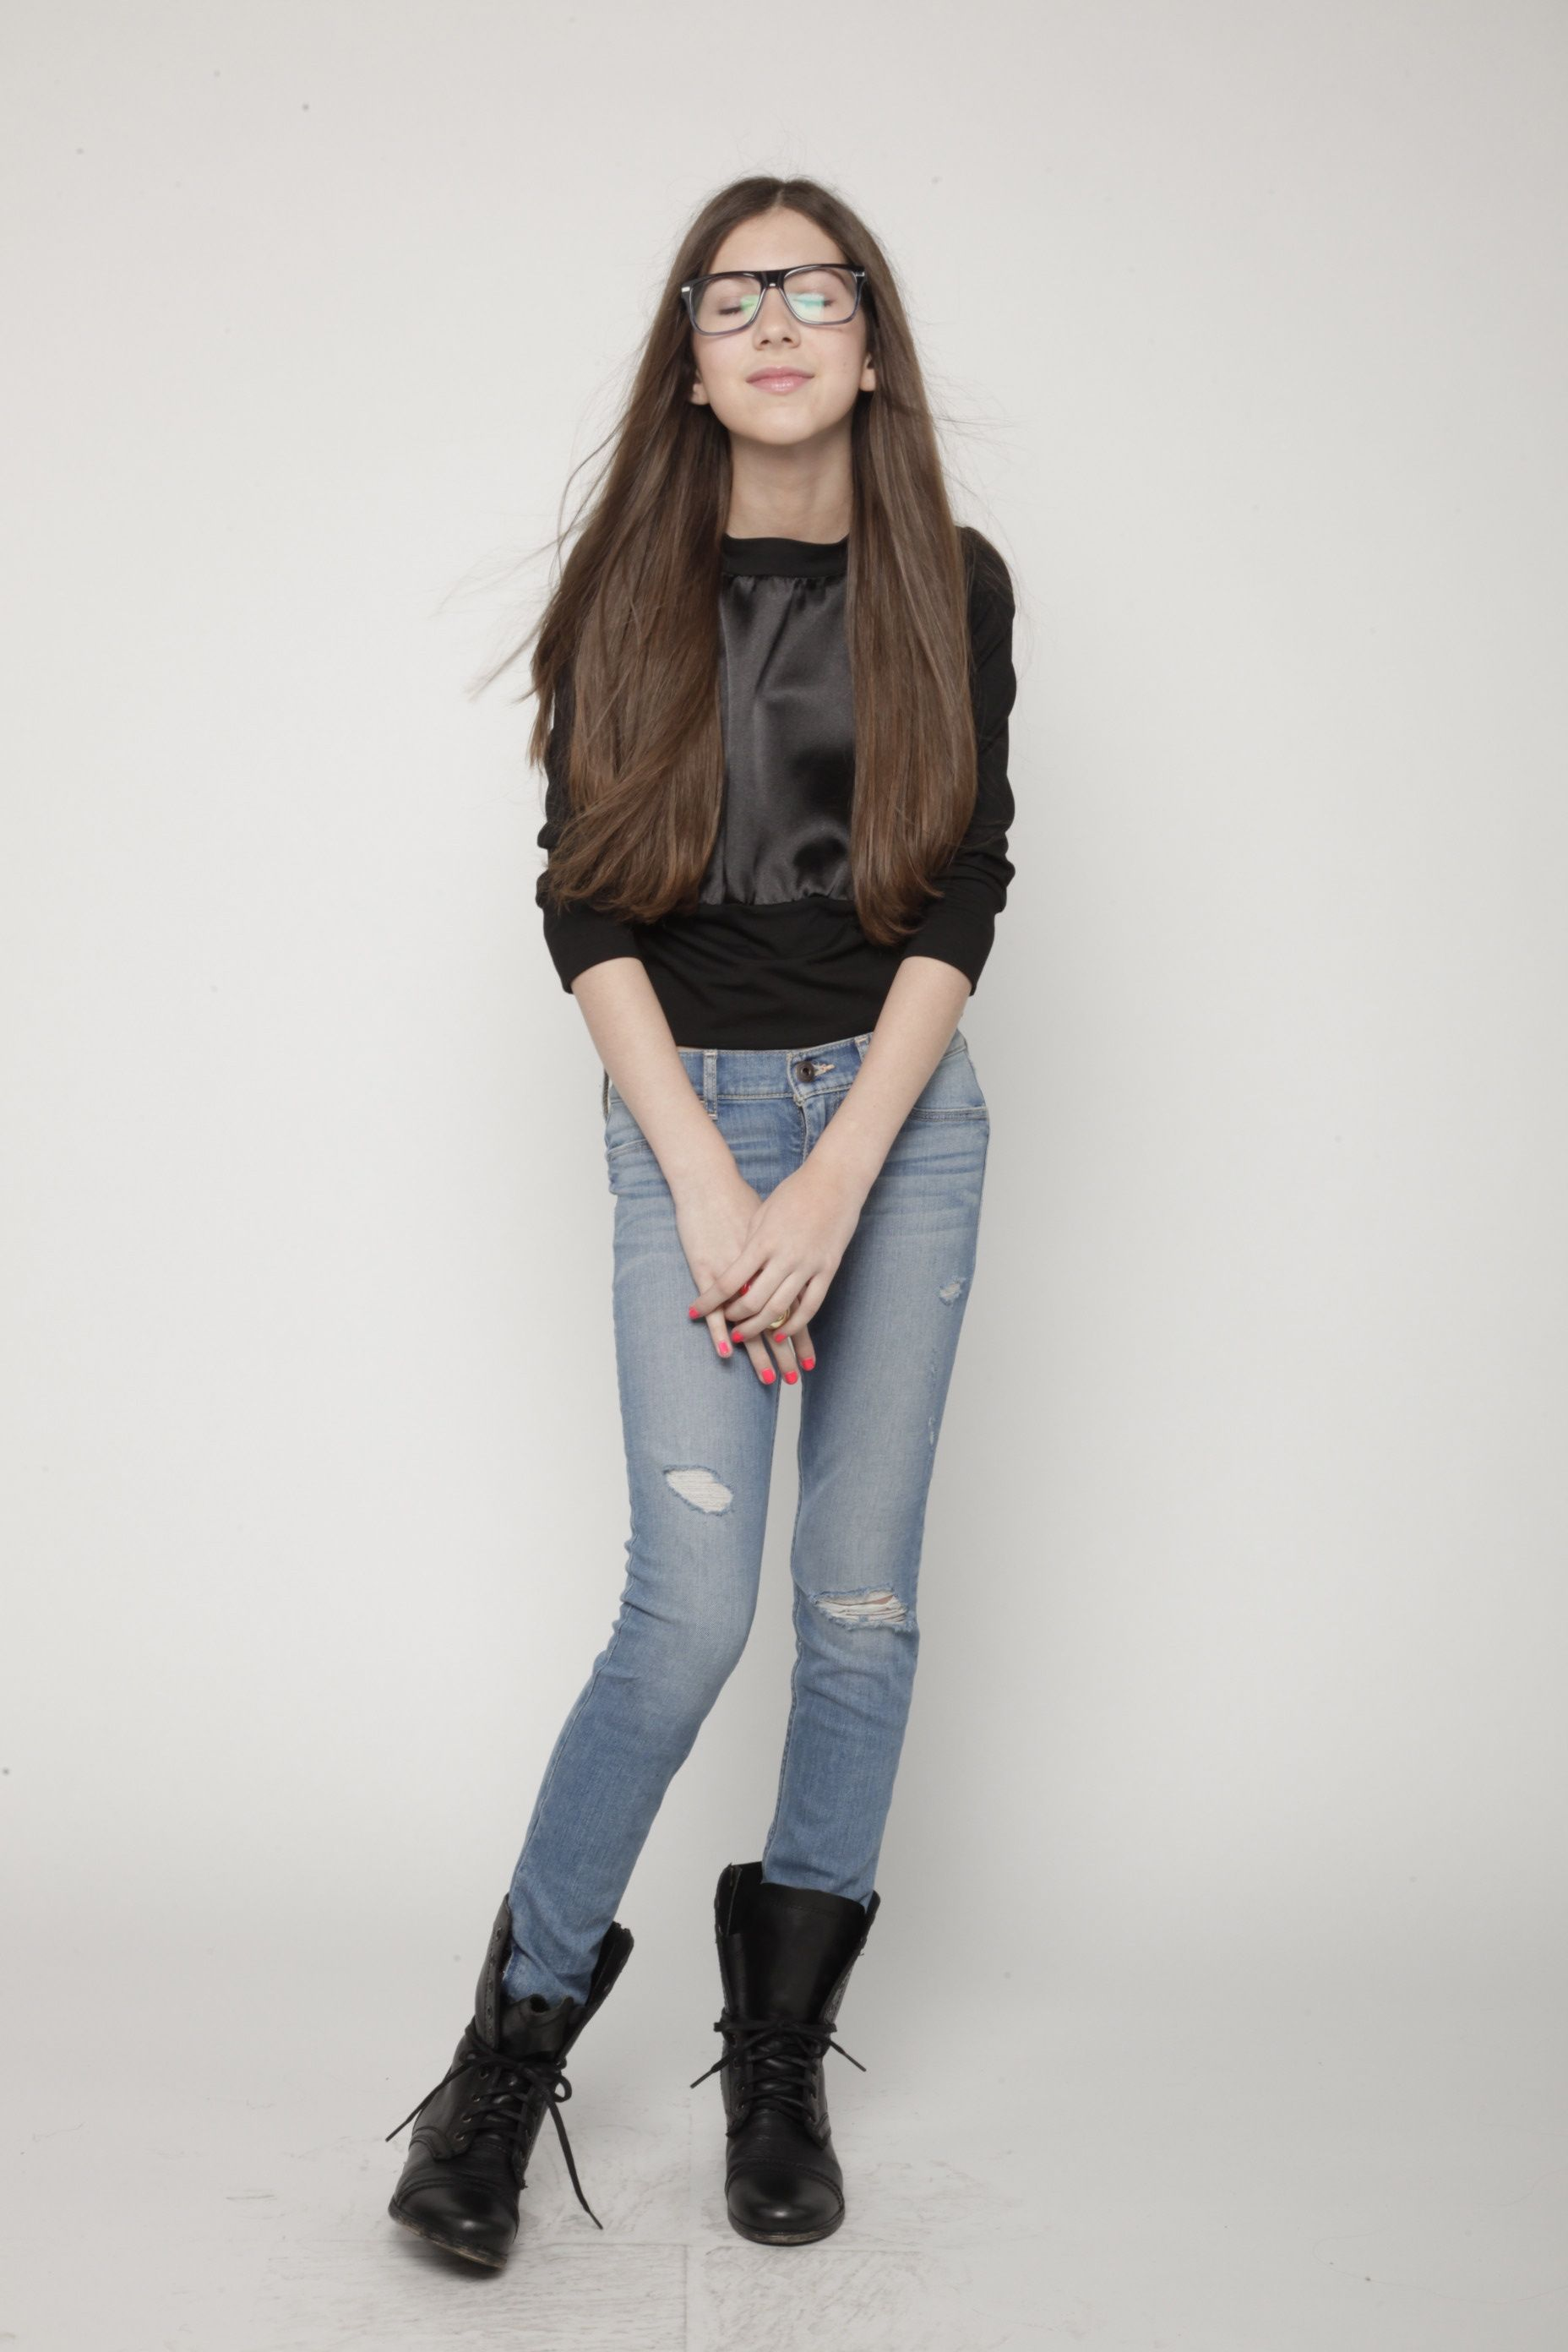 Tween Fashion From Www Isabellarosetaylor Com Tween